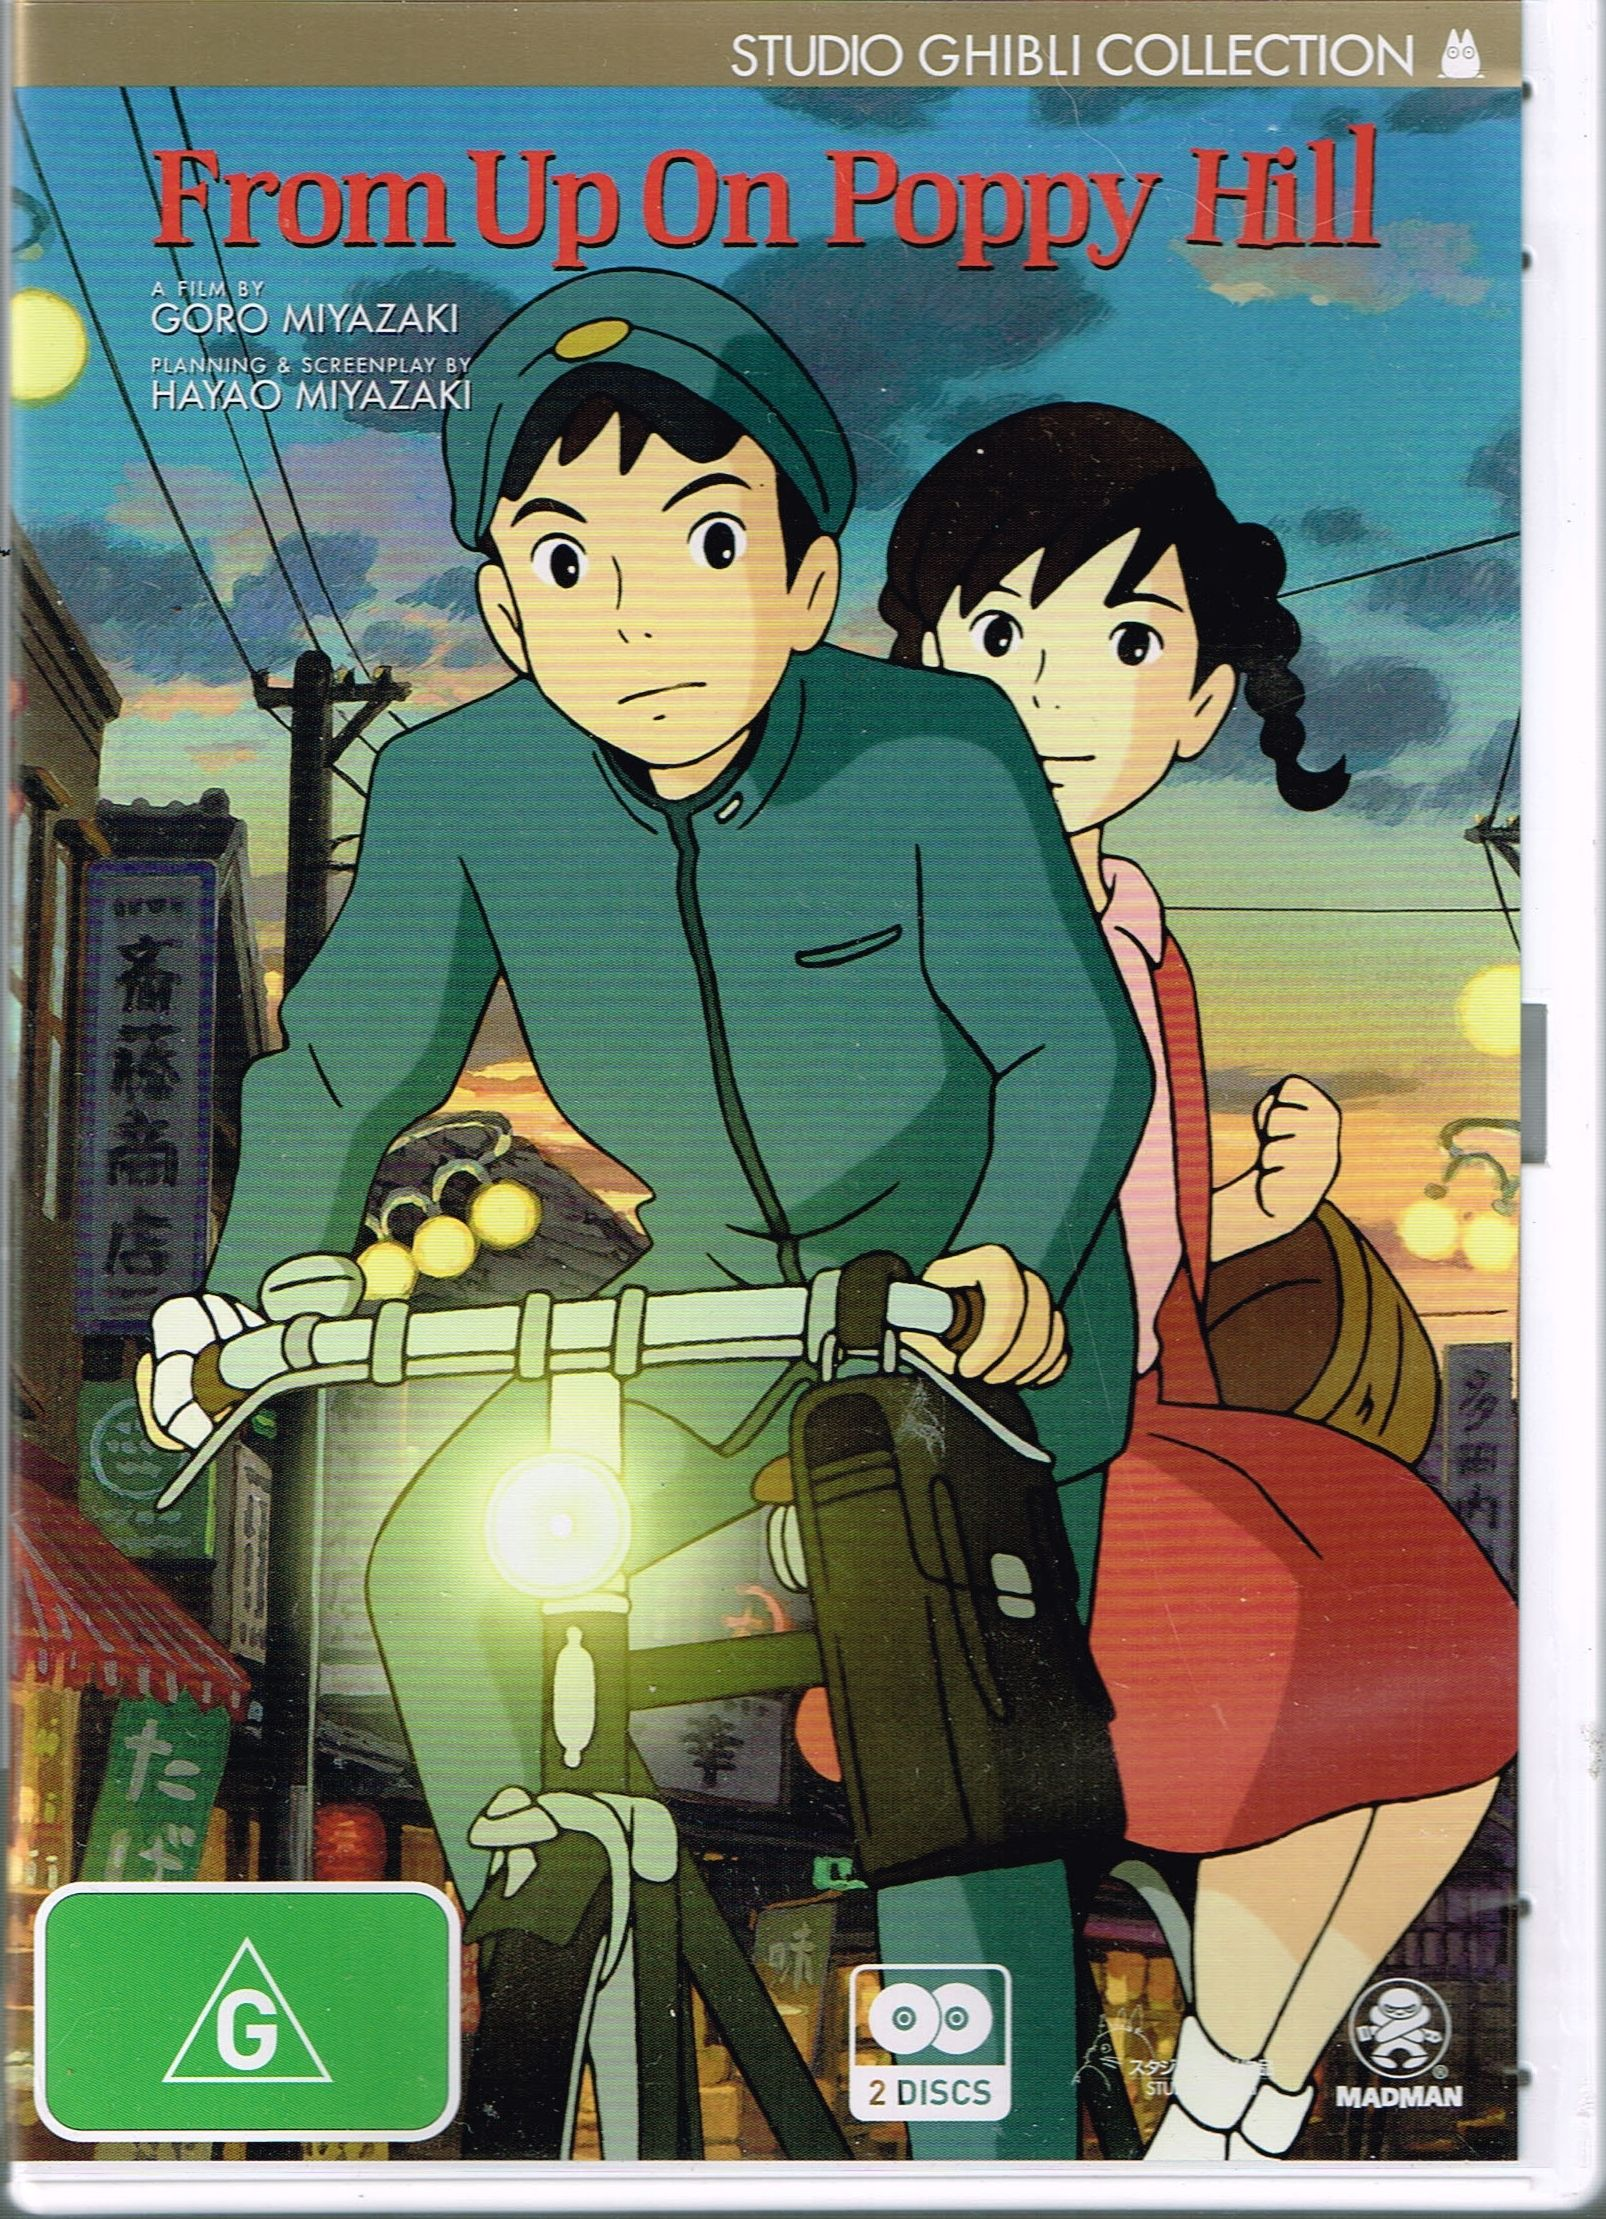 From Up On Poppy Hill, Studio Ghibli. Watched on DVD, 29th